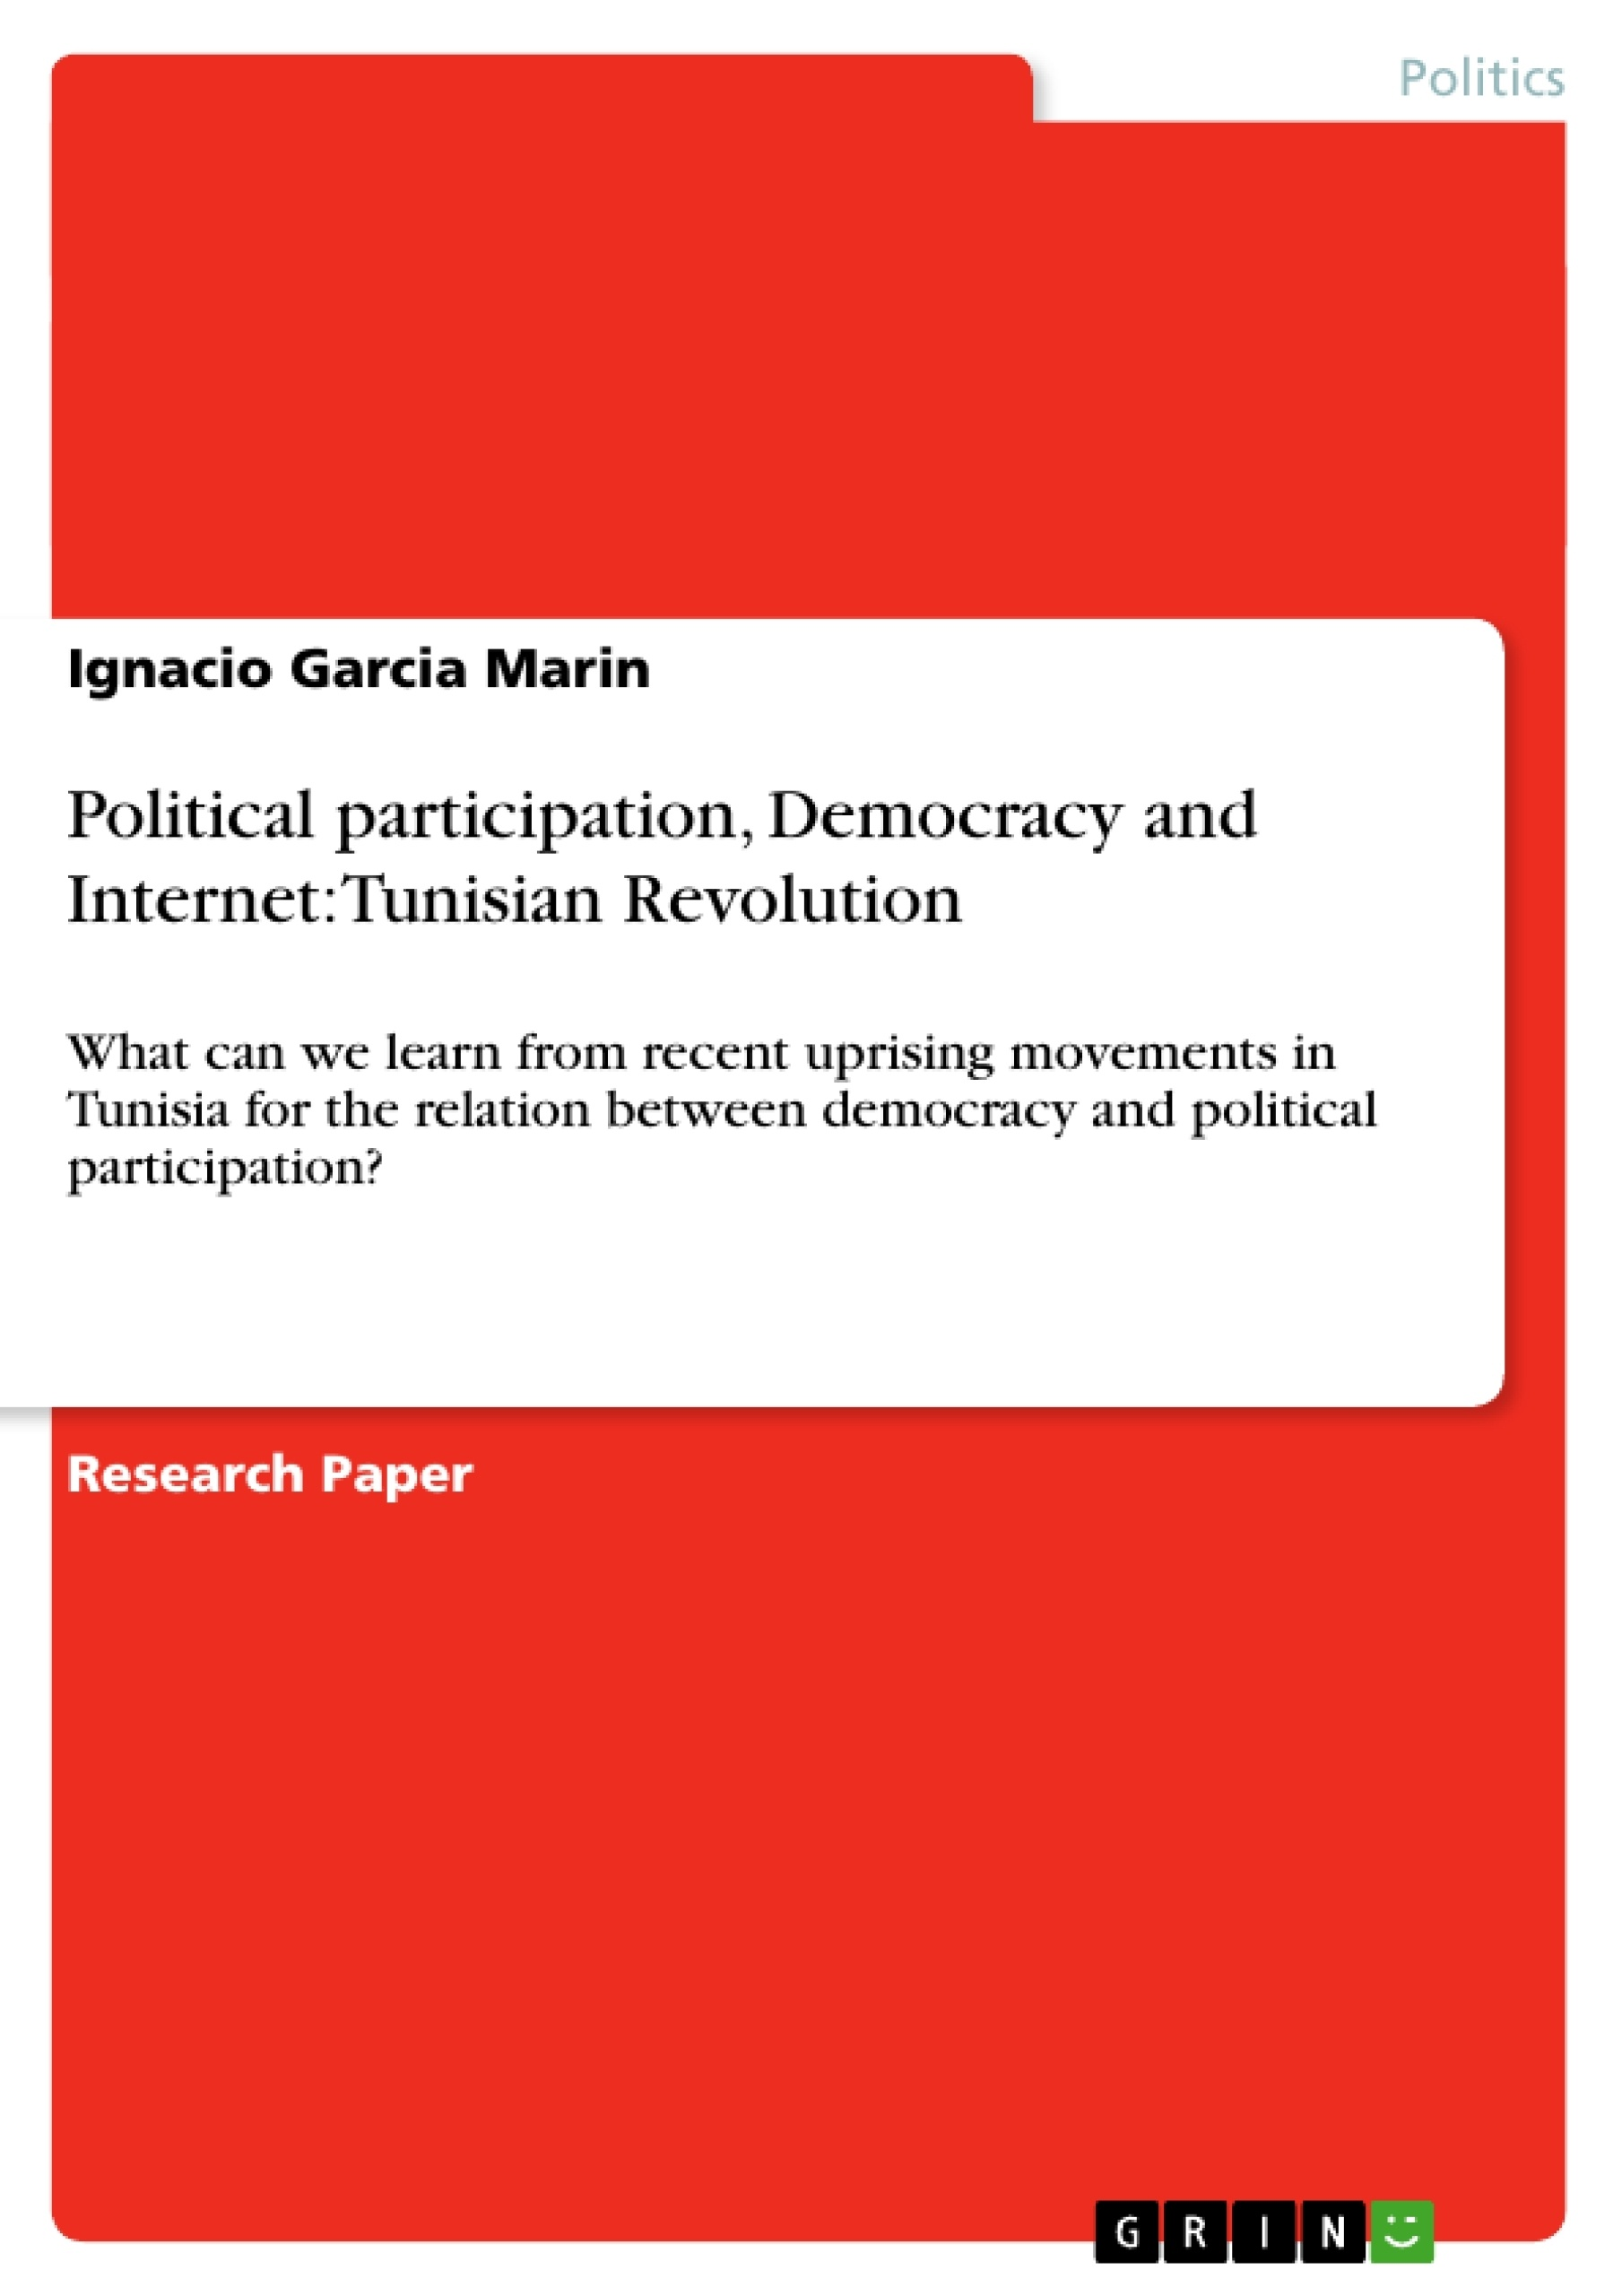 internet and democracy essay Academic paper homework help question democracy, internet topic is below 'does the internet help spread democracy' you have to answer this question with using 5.